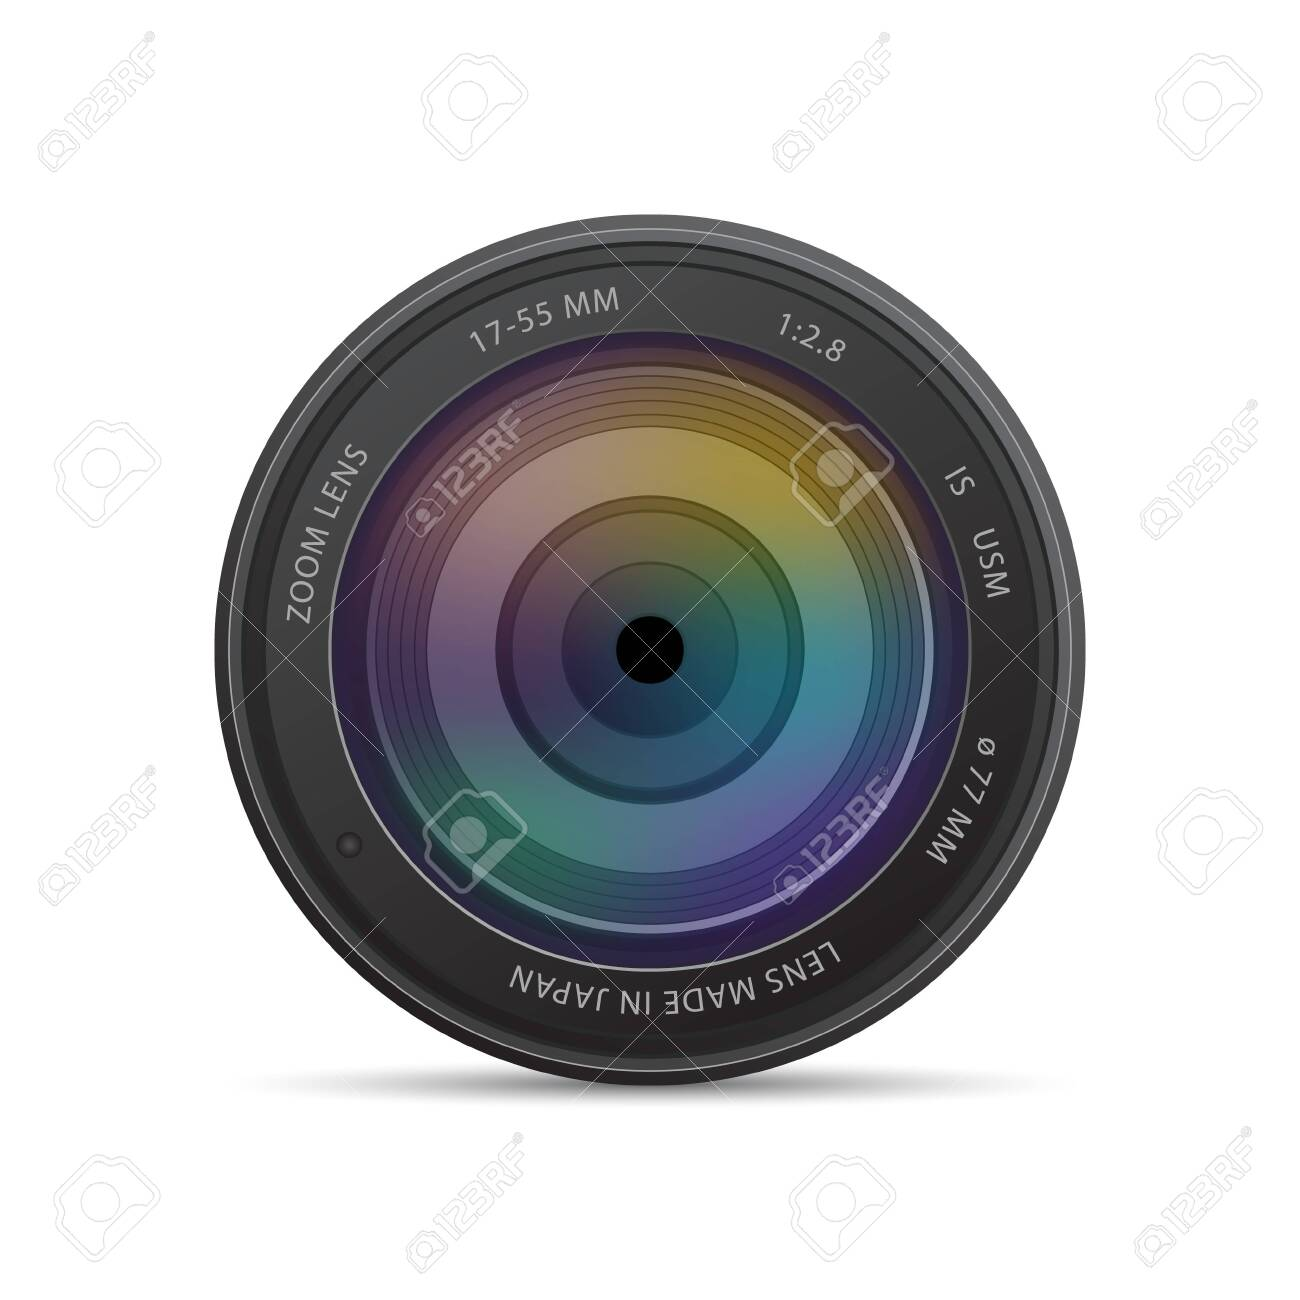 camera photo lens with shutter - 120460707